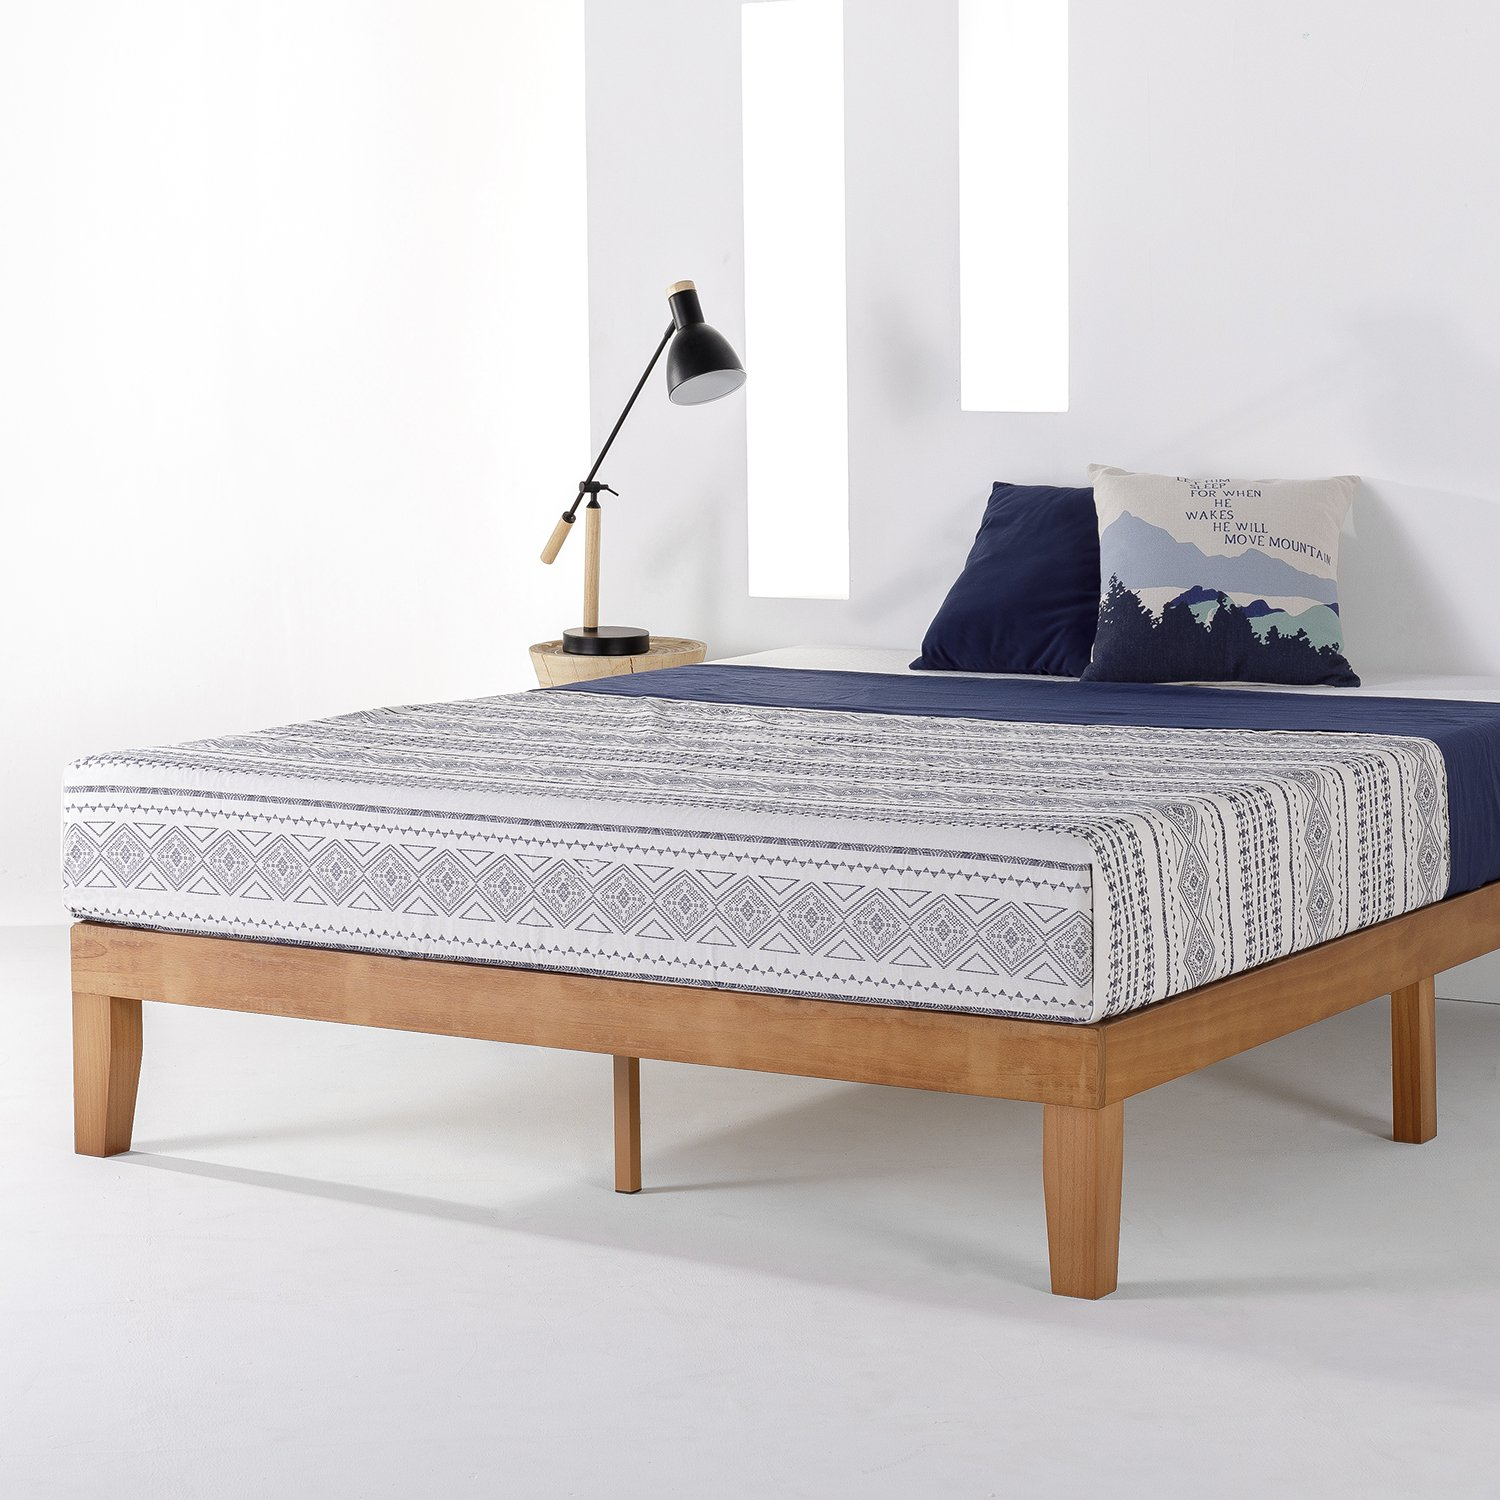 Mellow 12'' Classic Soild Wood Platform Bed Frame w/Wooden Slats (No Box Spring Needed) Queen Natural